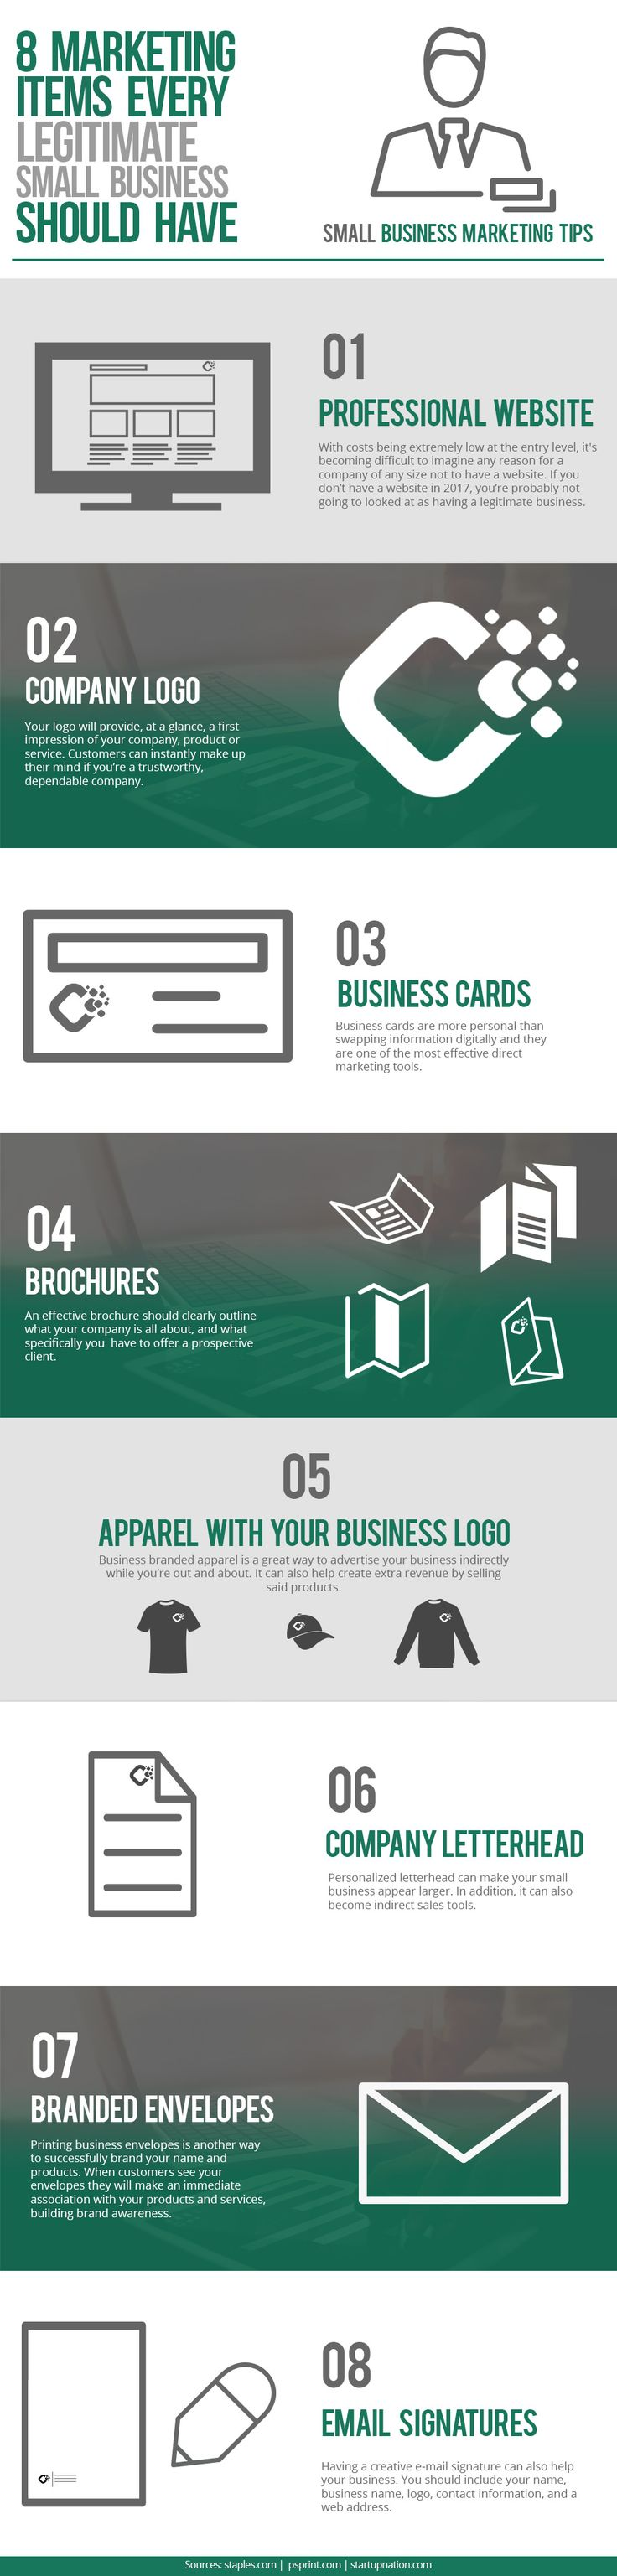 8 #Marketing Items Your New #Business Must Have #Infographic #Startup #WebDesign